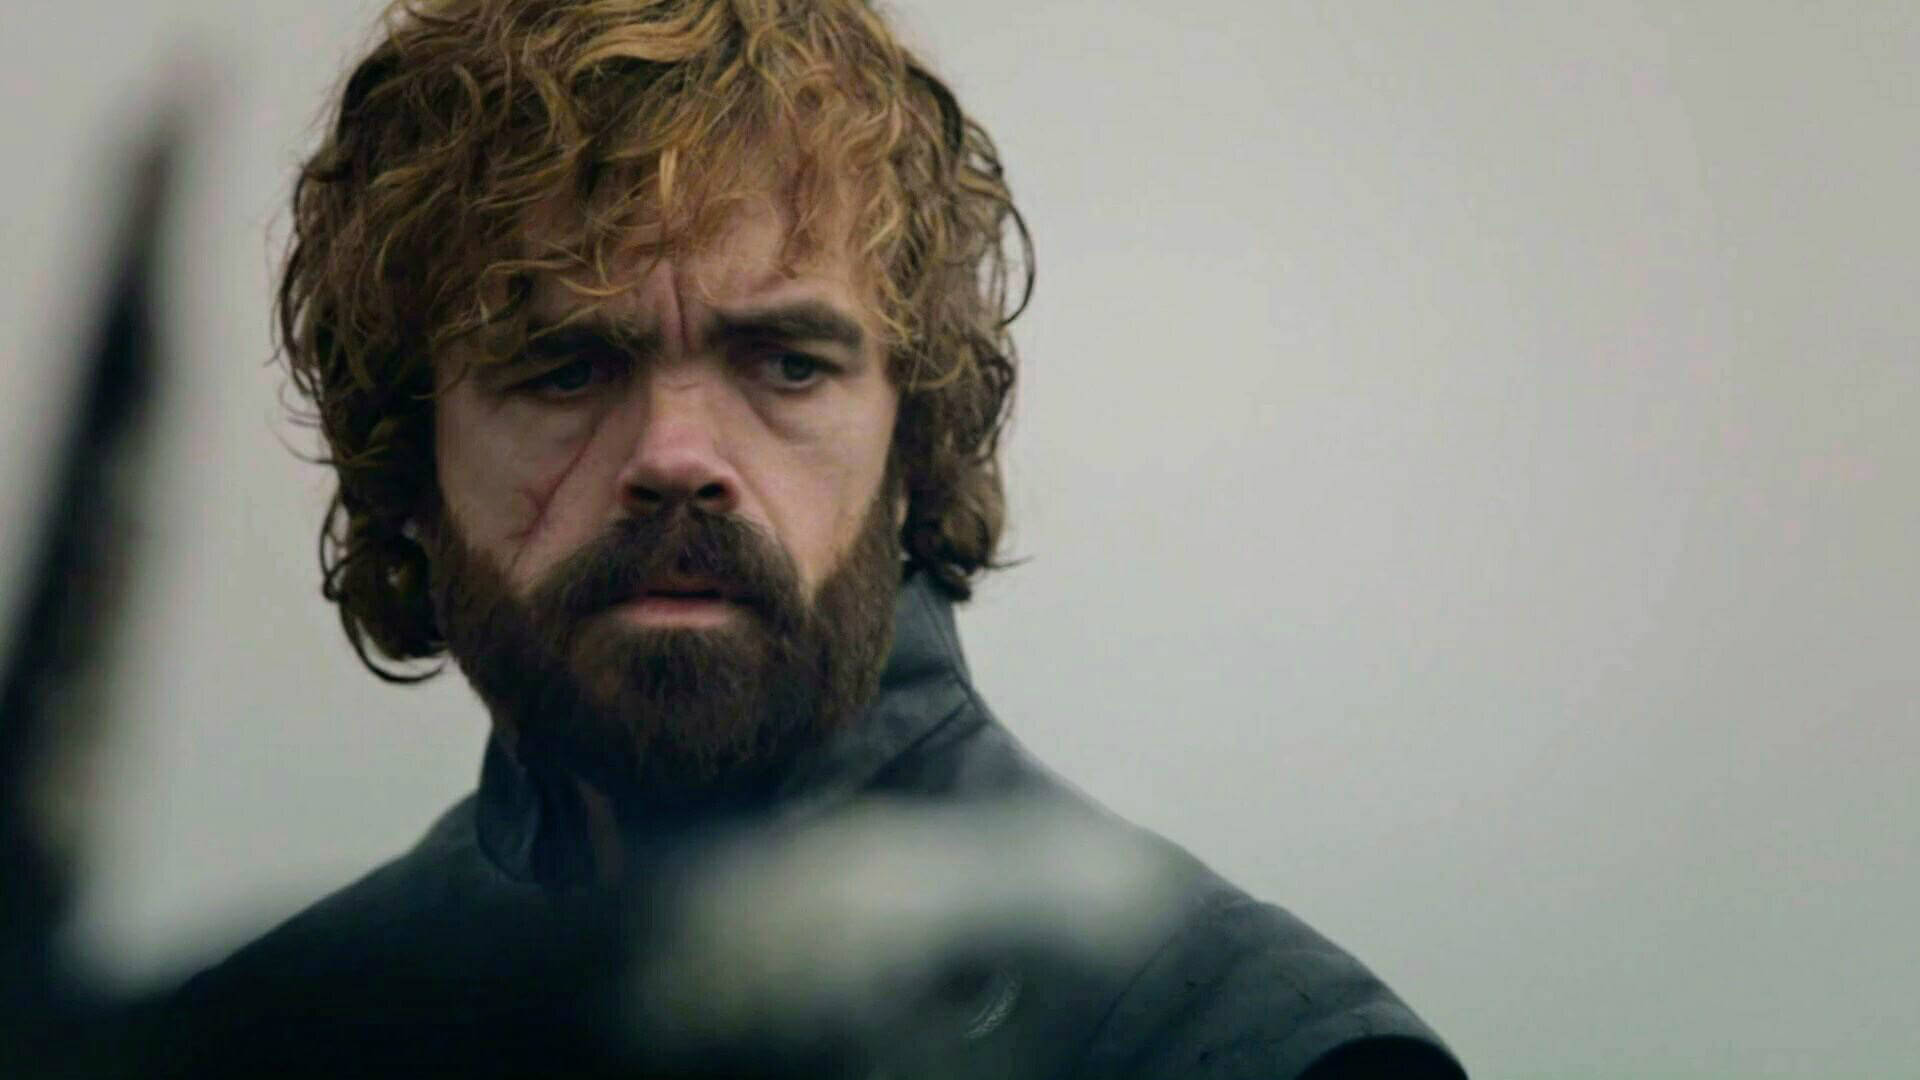 Opinion: 5 Game of Thrones Fan Theories That Could Still Happen